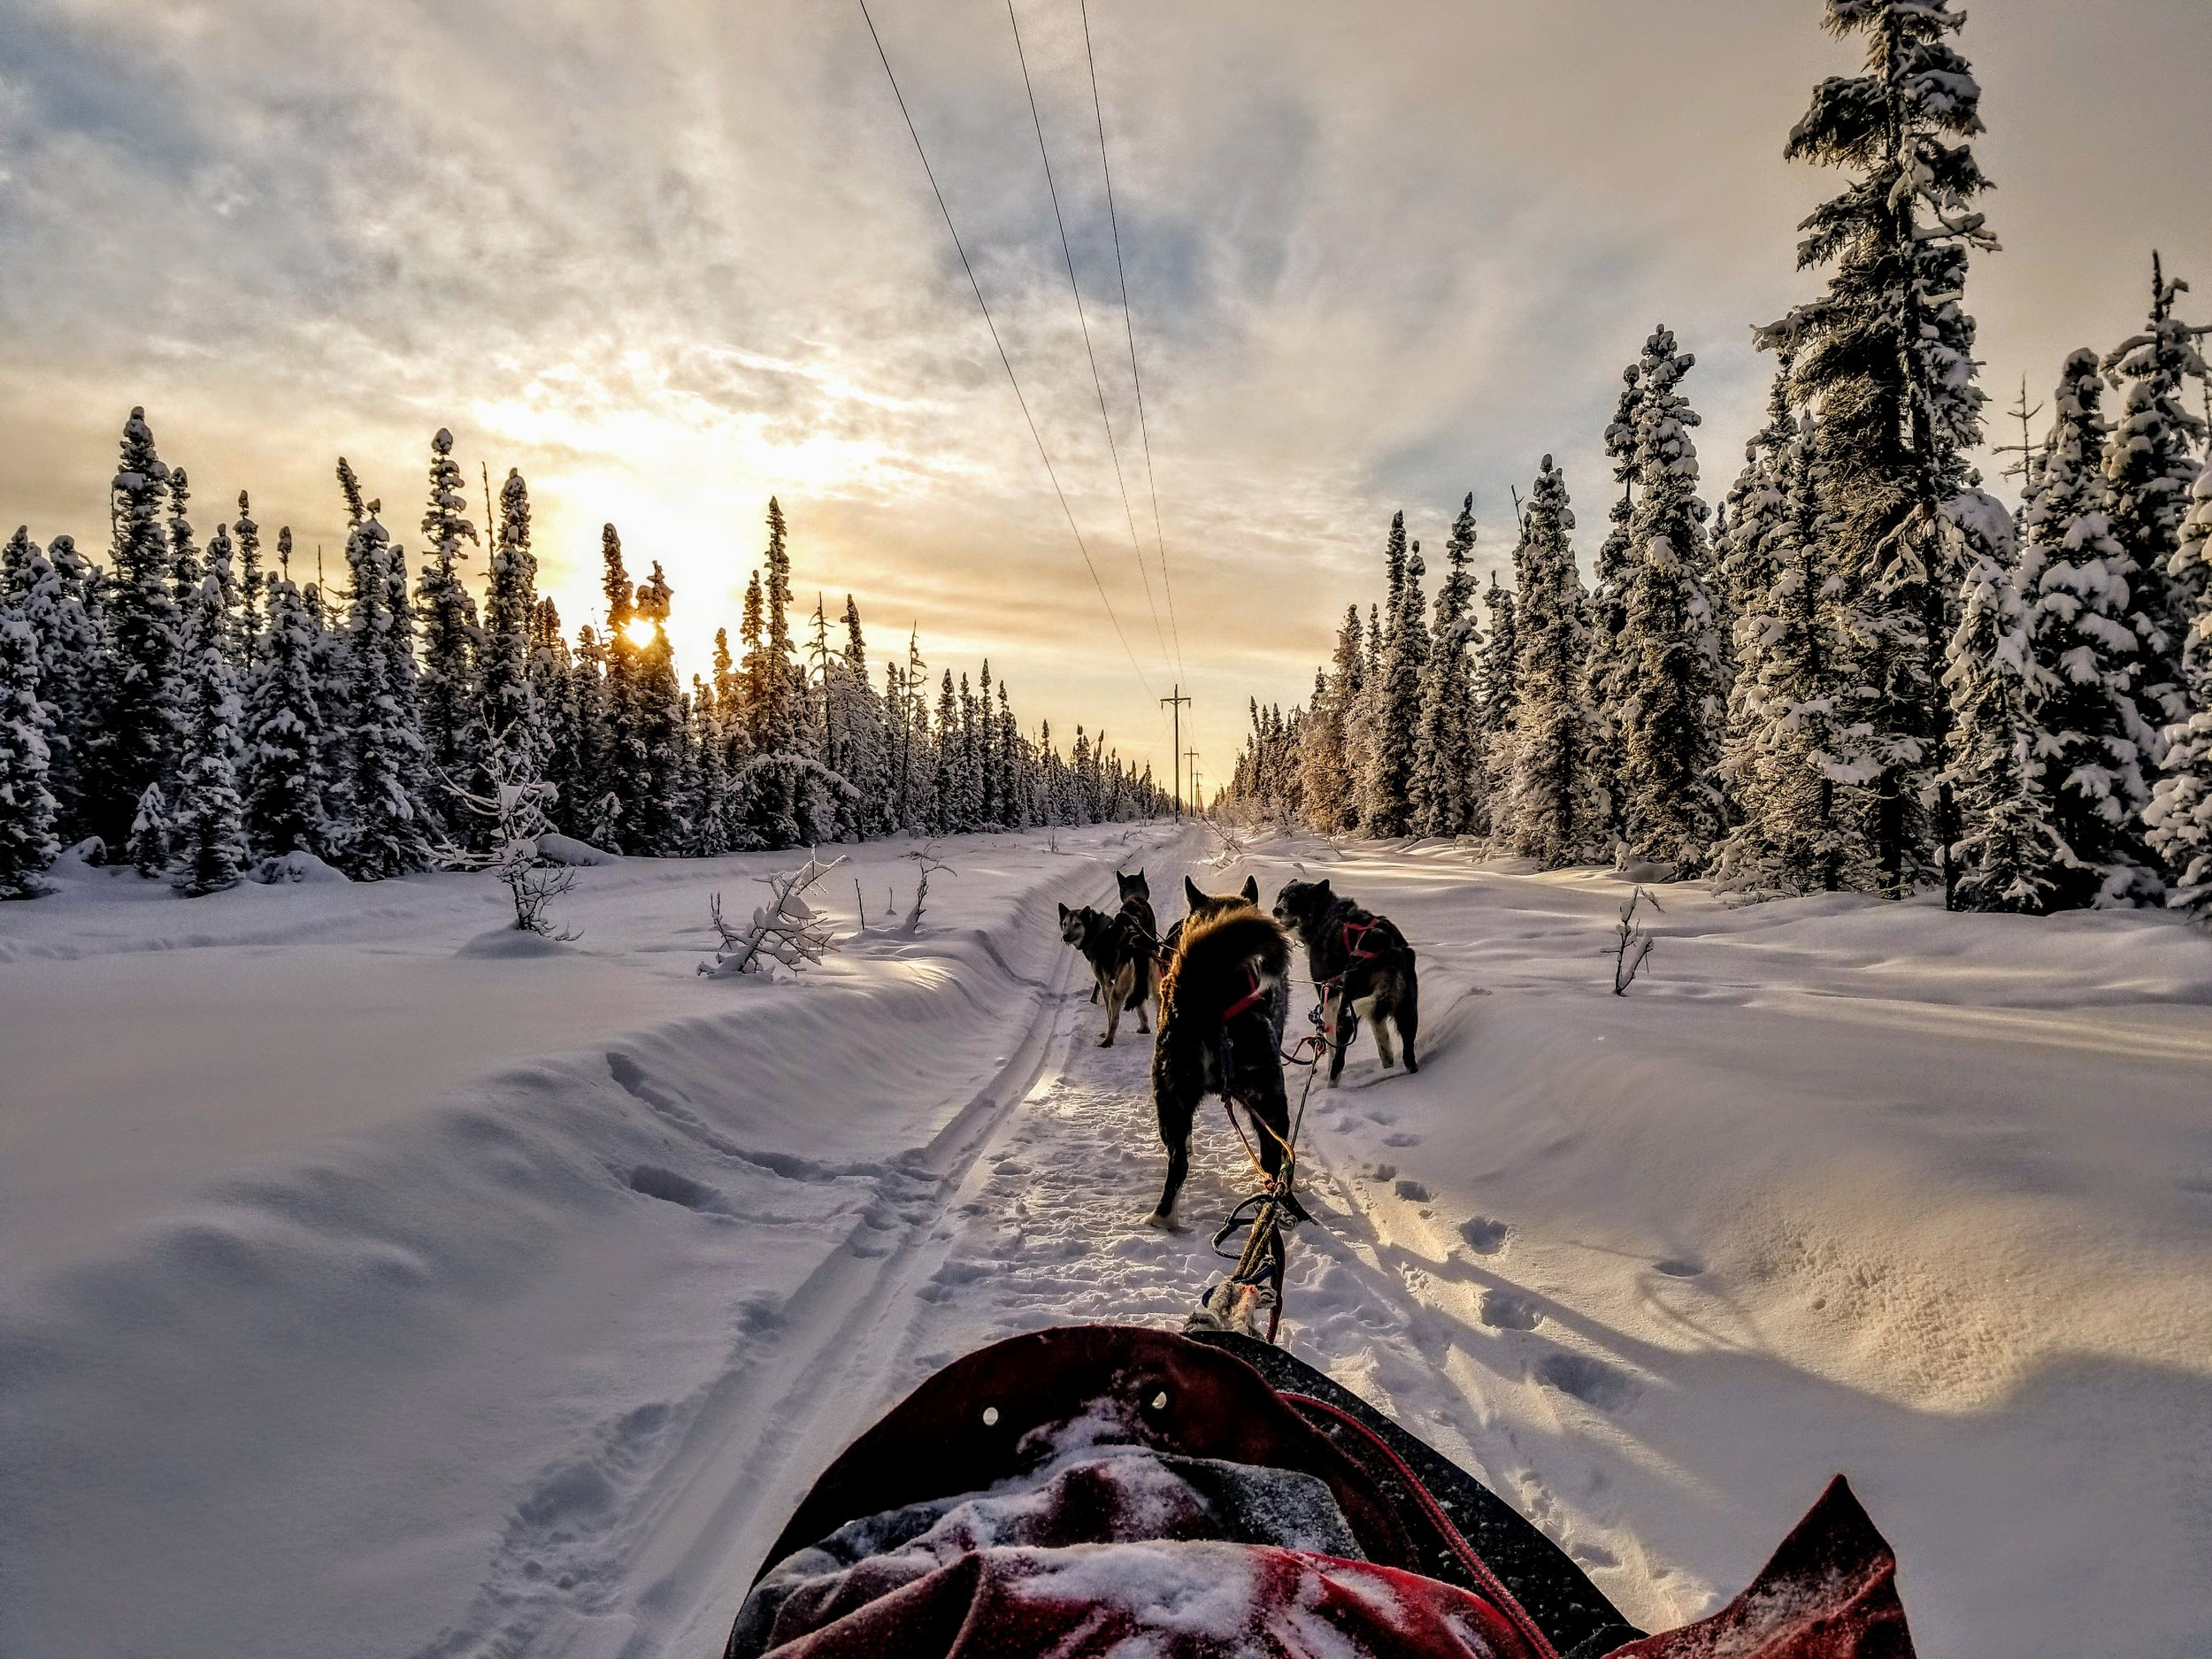 Mushing was never on my bucket list and it should have been. So much fun.